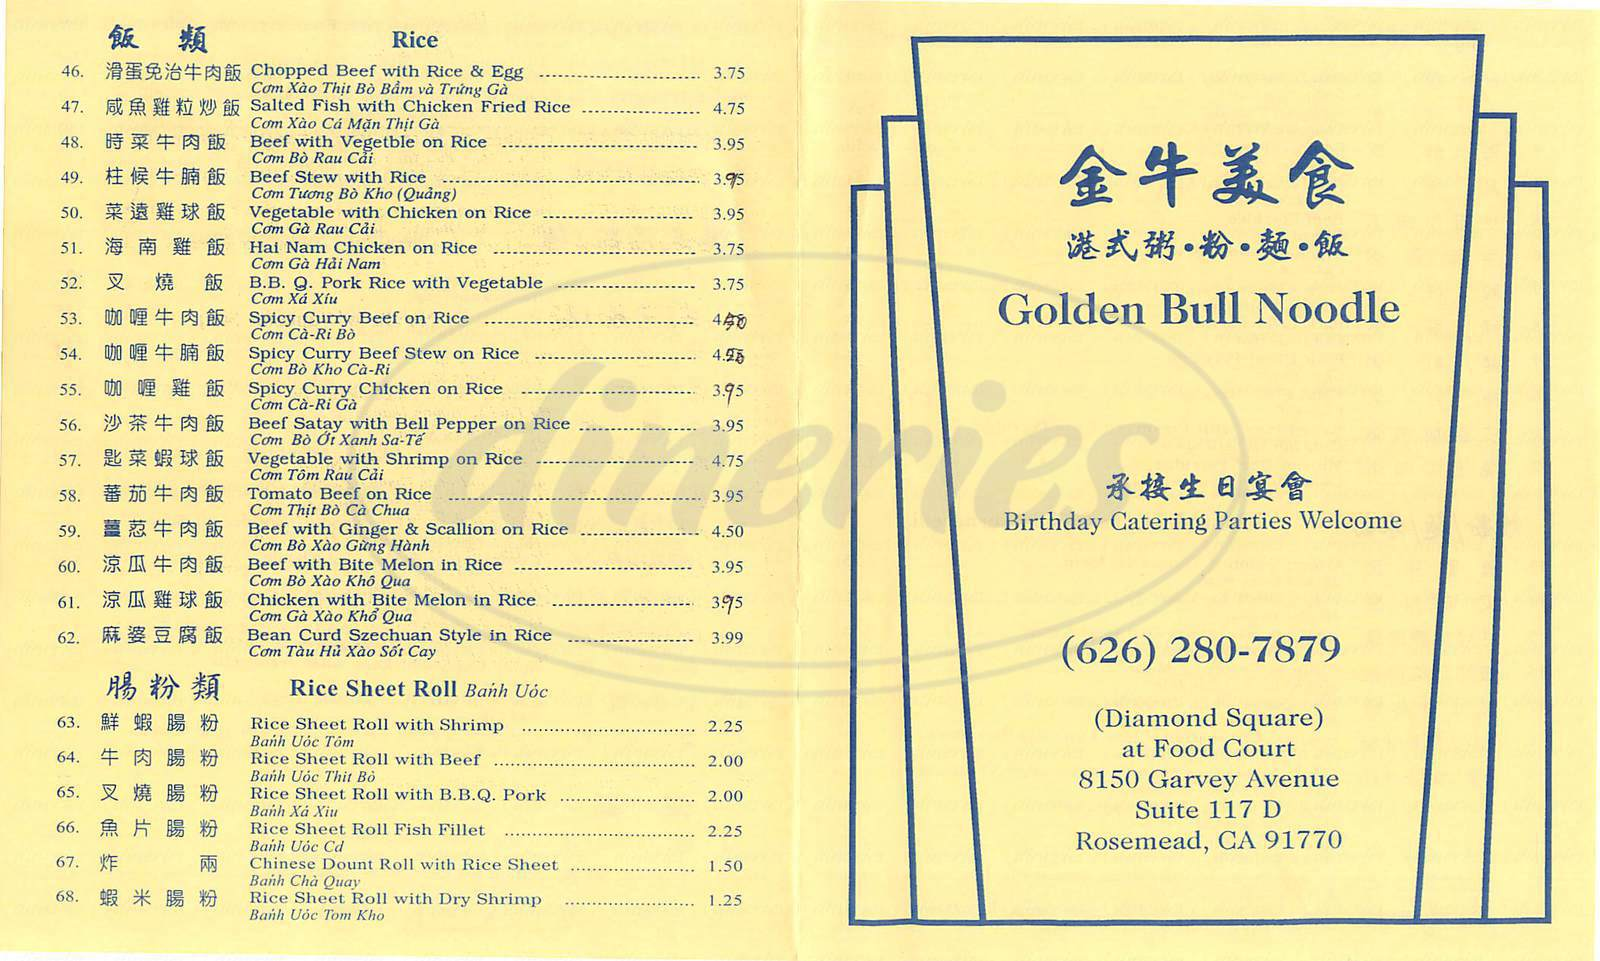 menu for Golden Bull Noodle